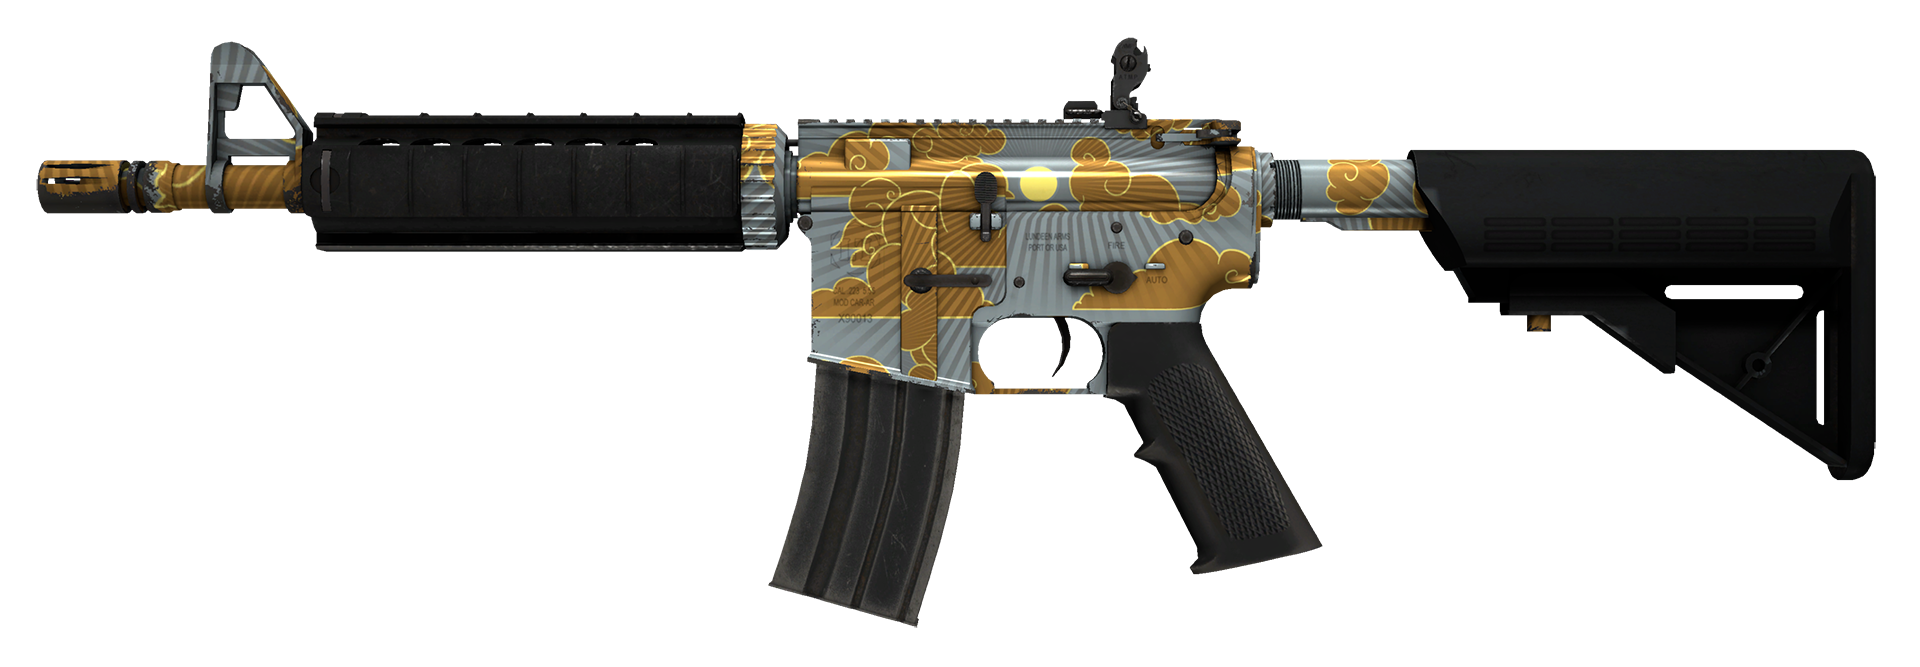 M4A4 Daybreak Large Rendering